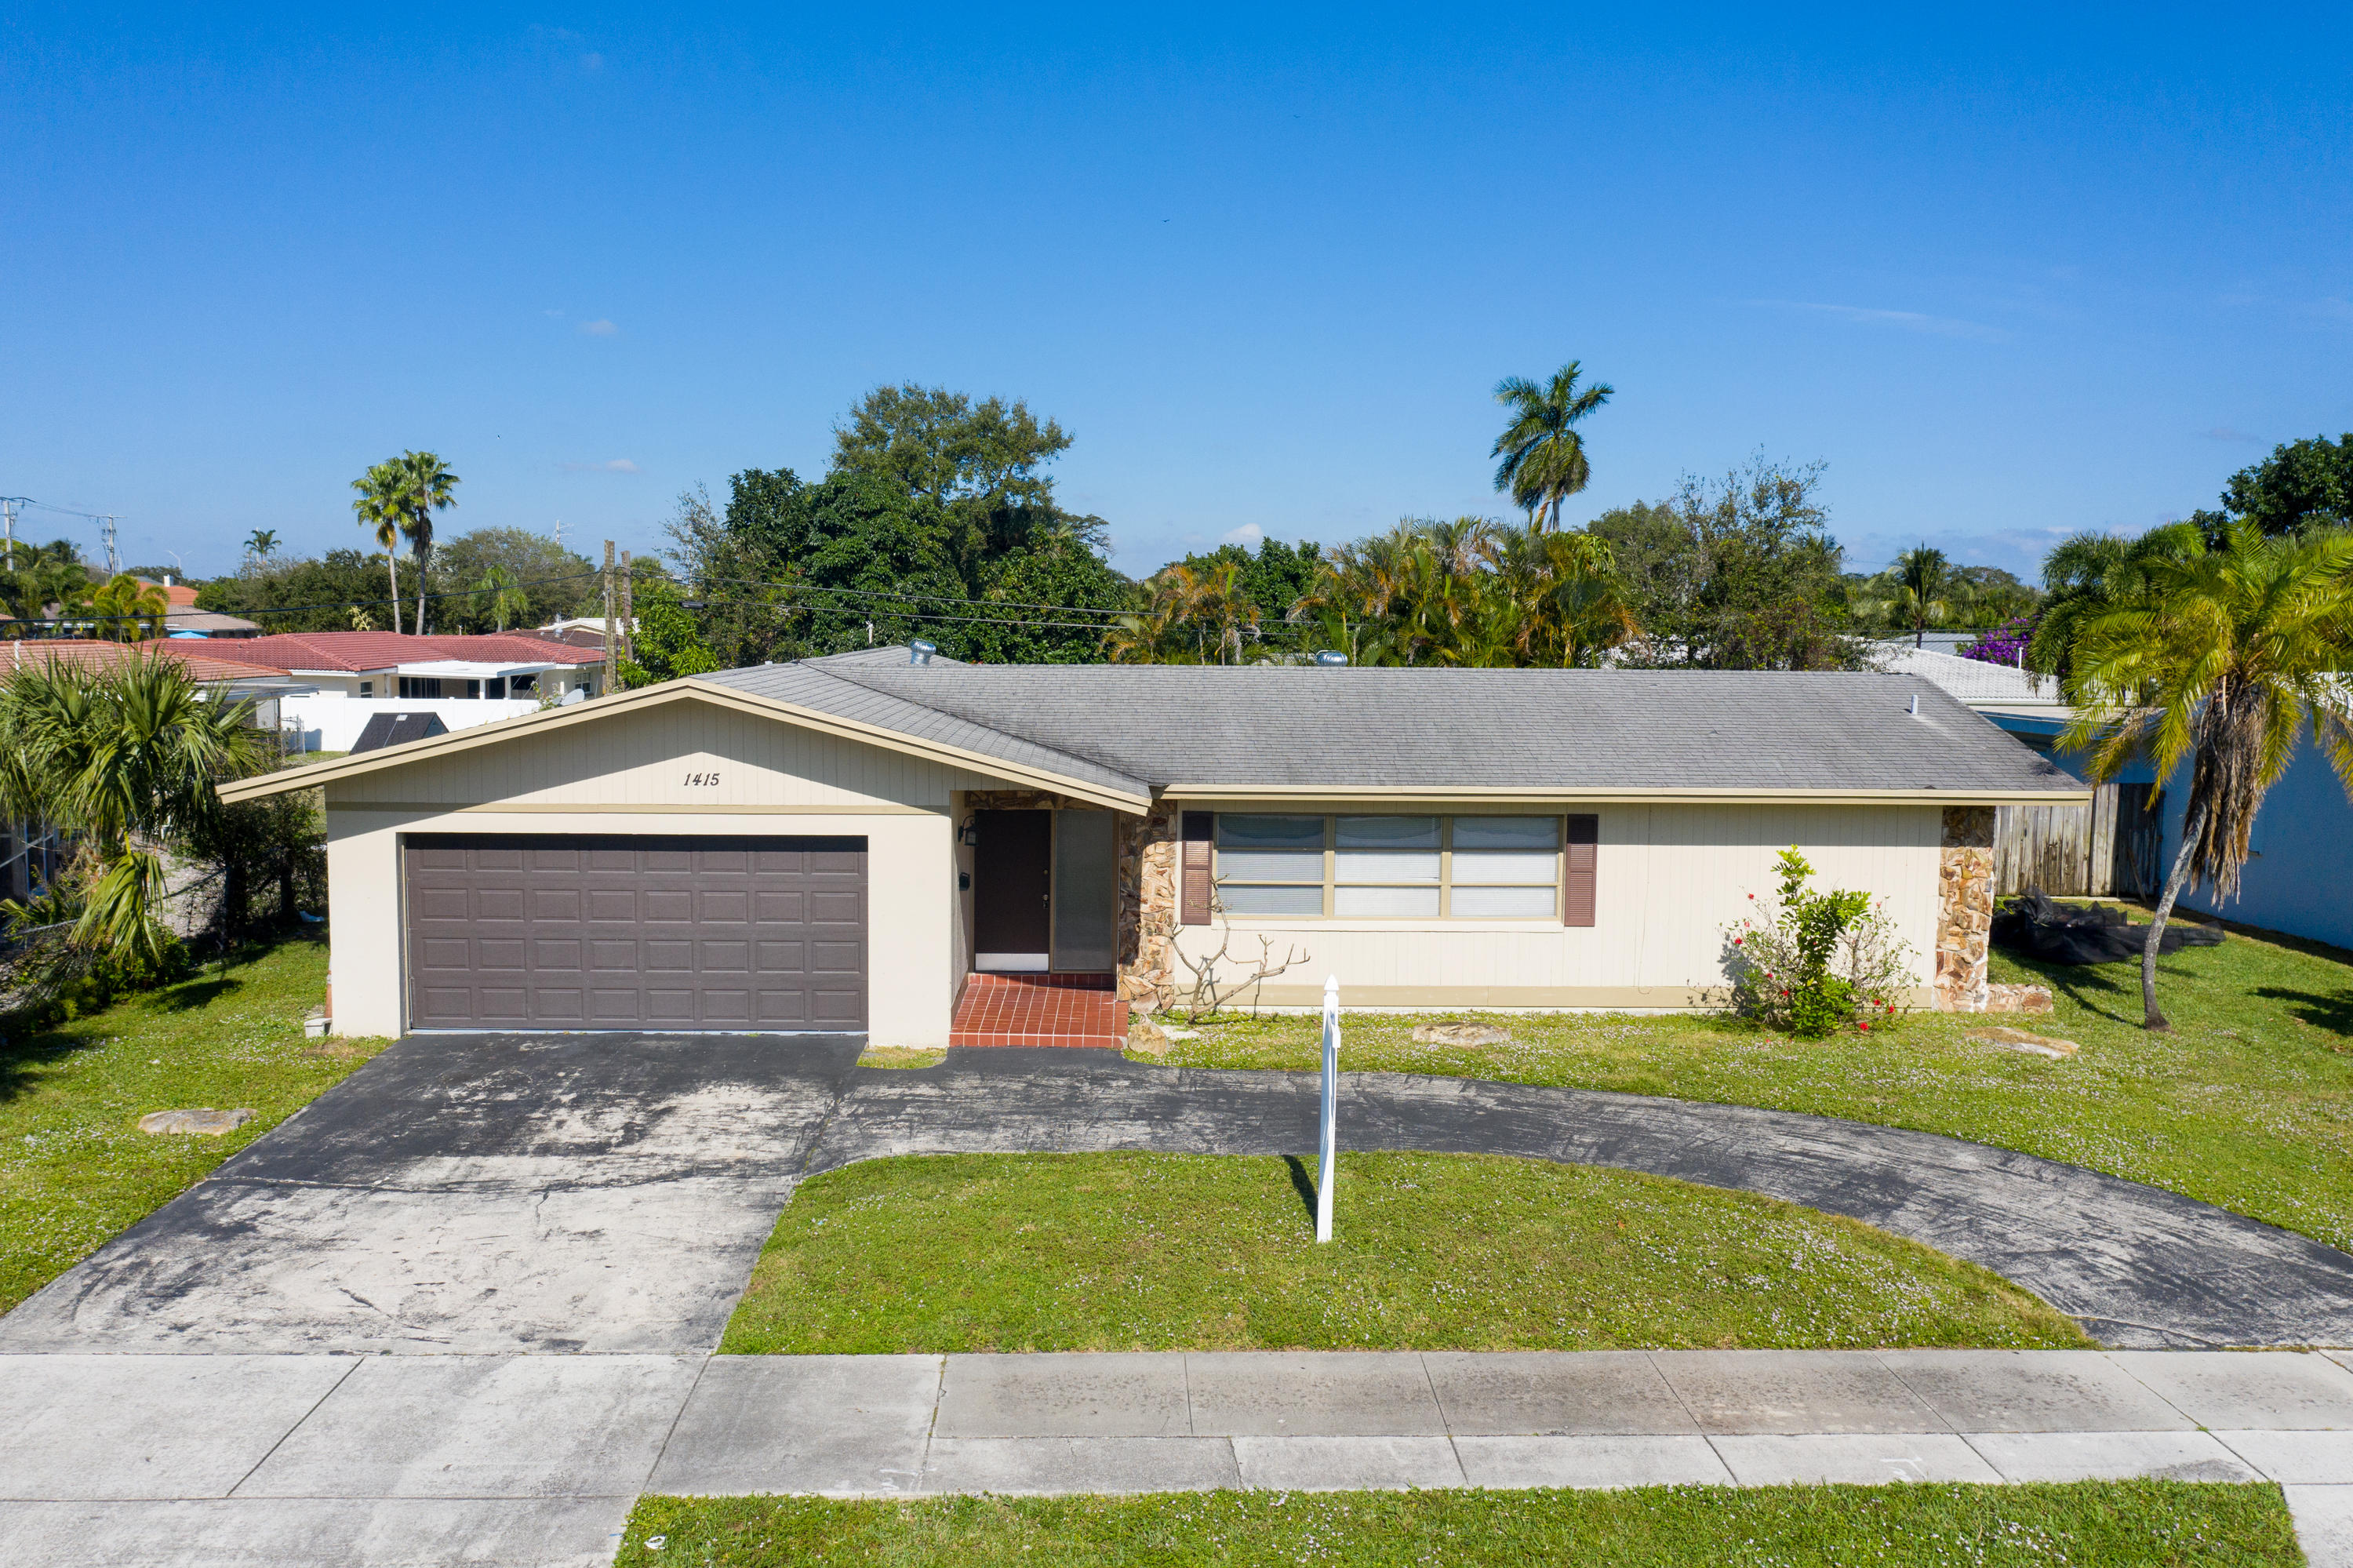 GREAT EAST BOCA LOCATION, 4 BED/3BA HOME WITH A POOL. UPDATED BATHROOMS,   WITH A SPLIT BEDROOM PLAN AND SPACIOUS LIV AREA.GREAT A RATED SCHOOLS. MINUTES TO BEACH AND DOWNTOWN LIVING OF BOCA.